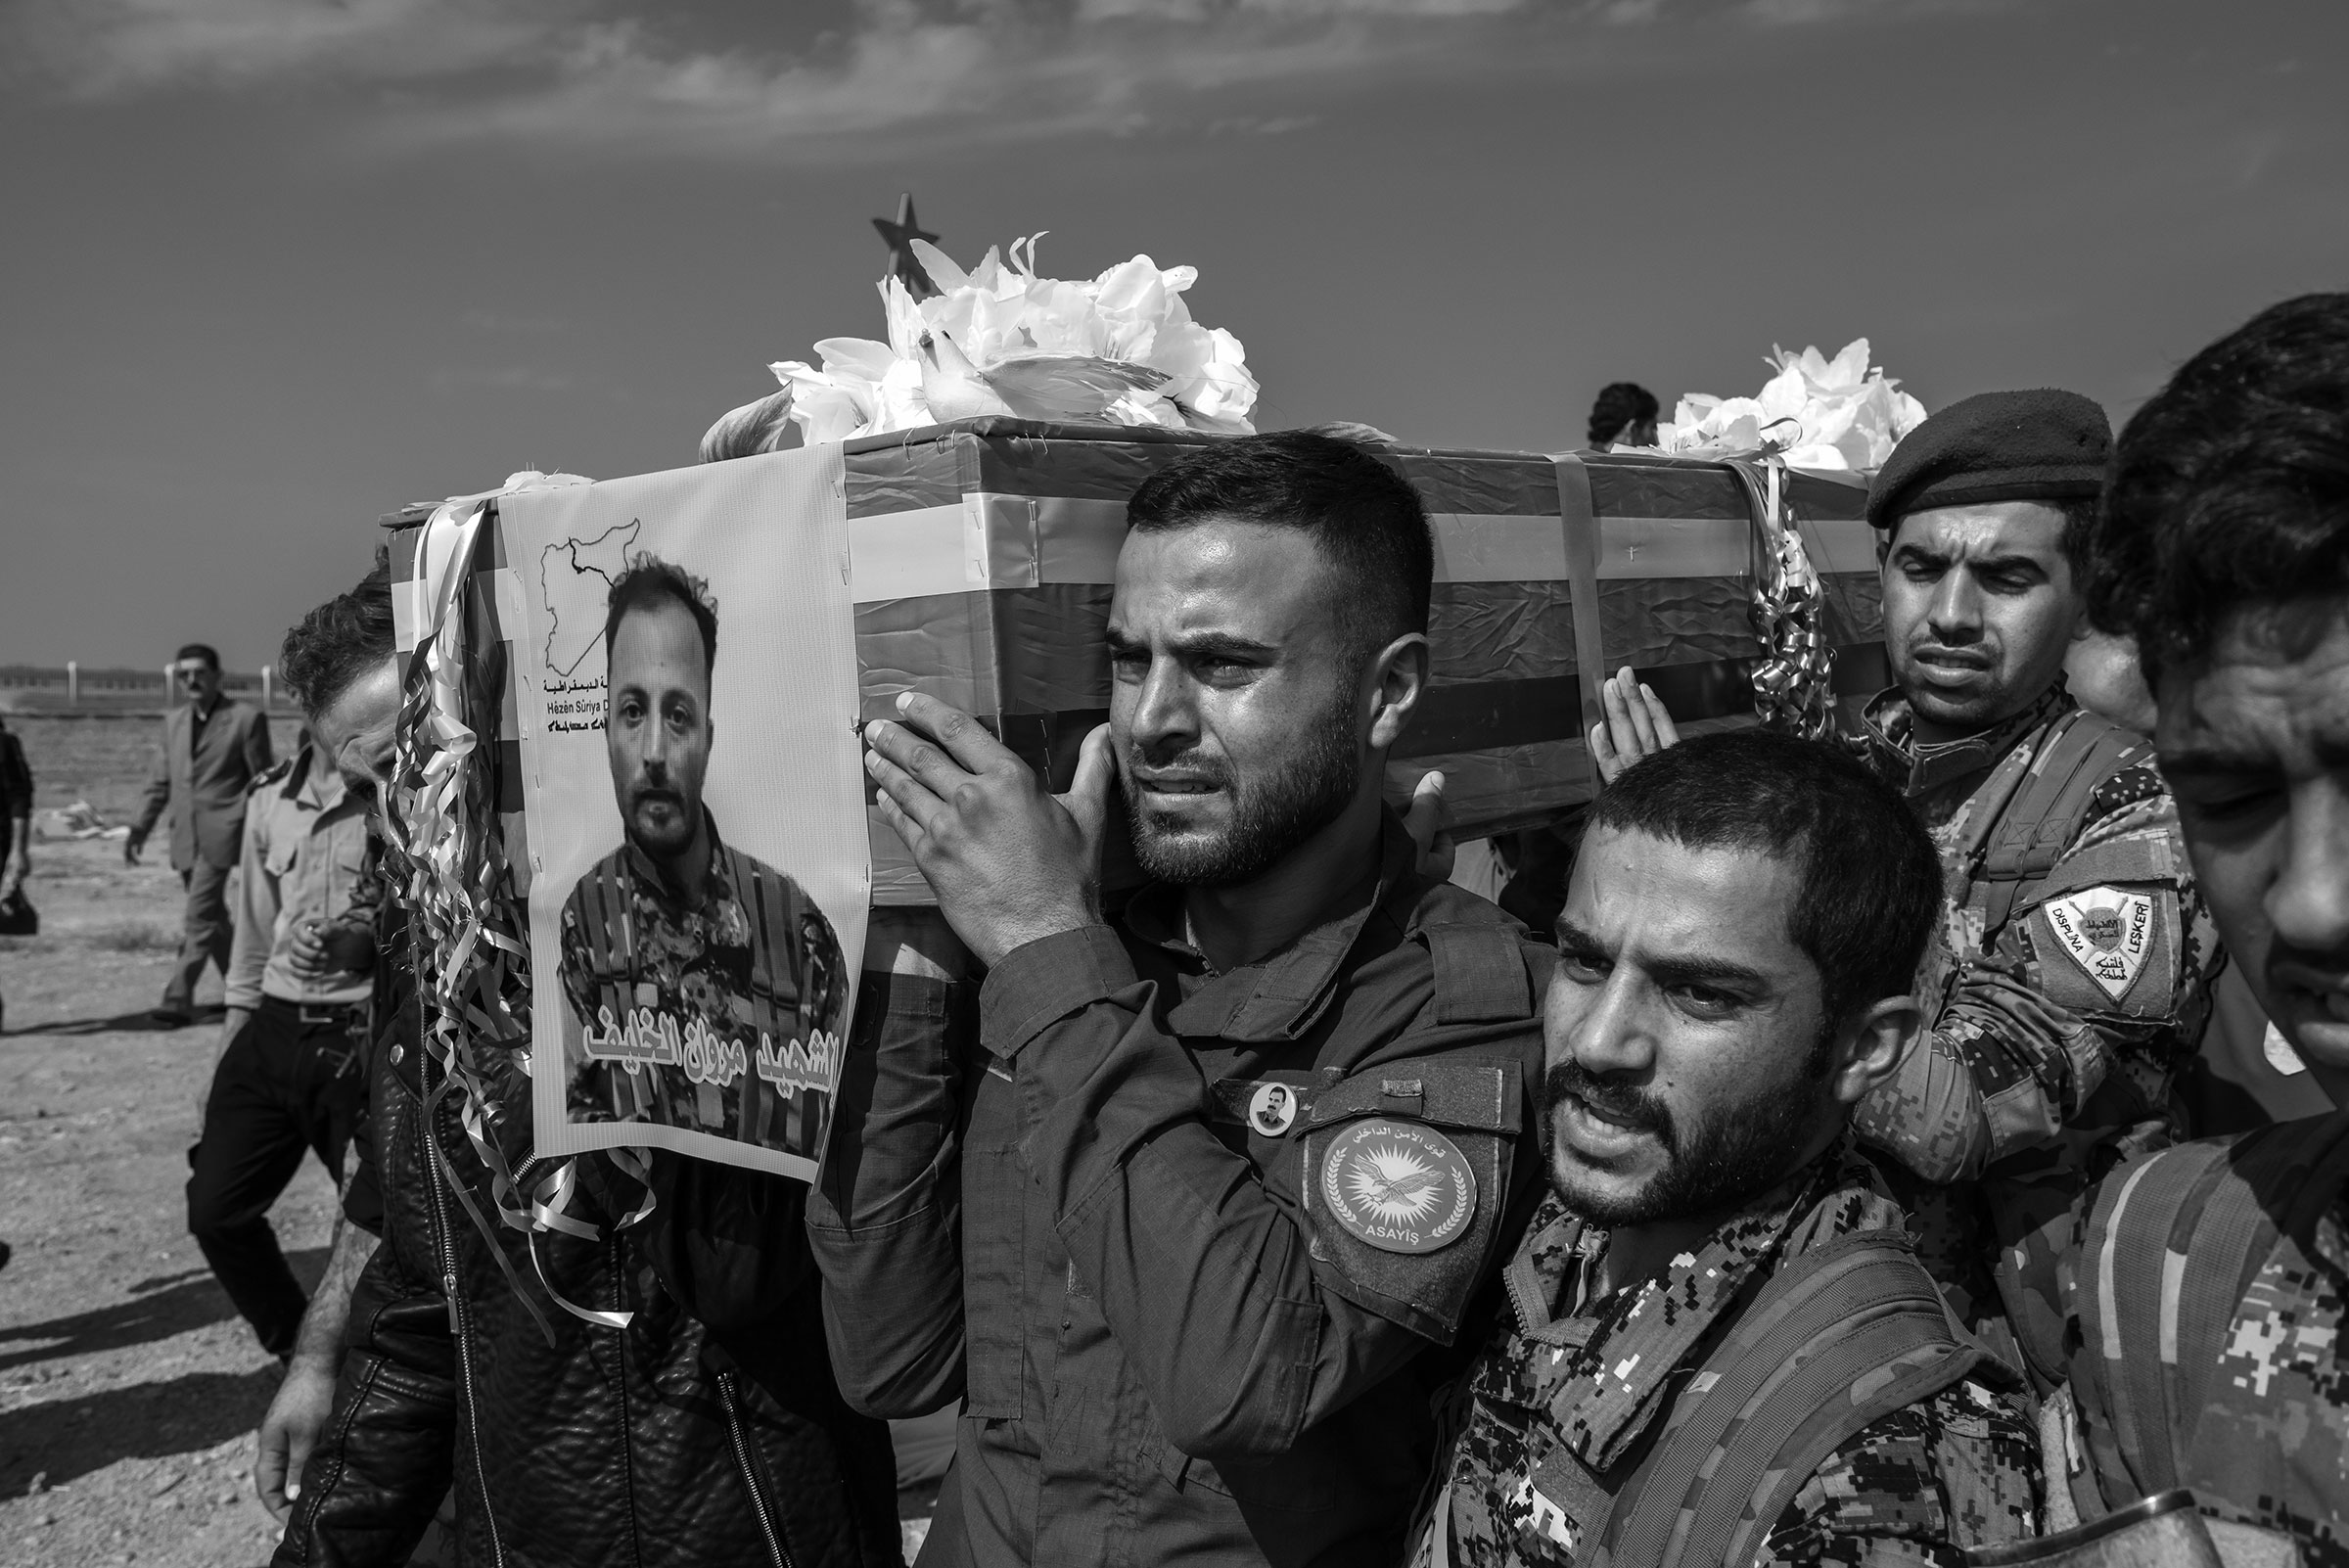 Men (TK man for man in middle) carry the coffin of a Syrian Democratic Forces member (TK) killed fighting Turkish-backed militants in northeastern Syria, in the town of Tel Hamis, Syria on October 21, 2019.